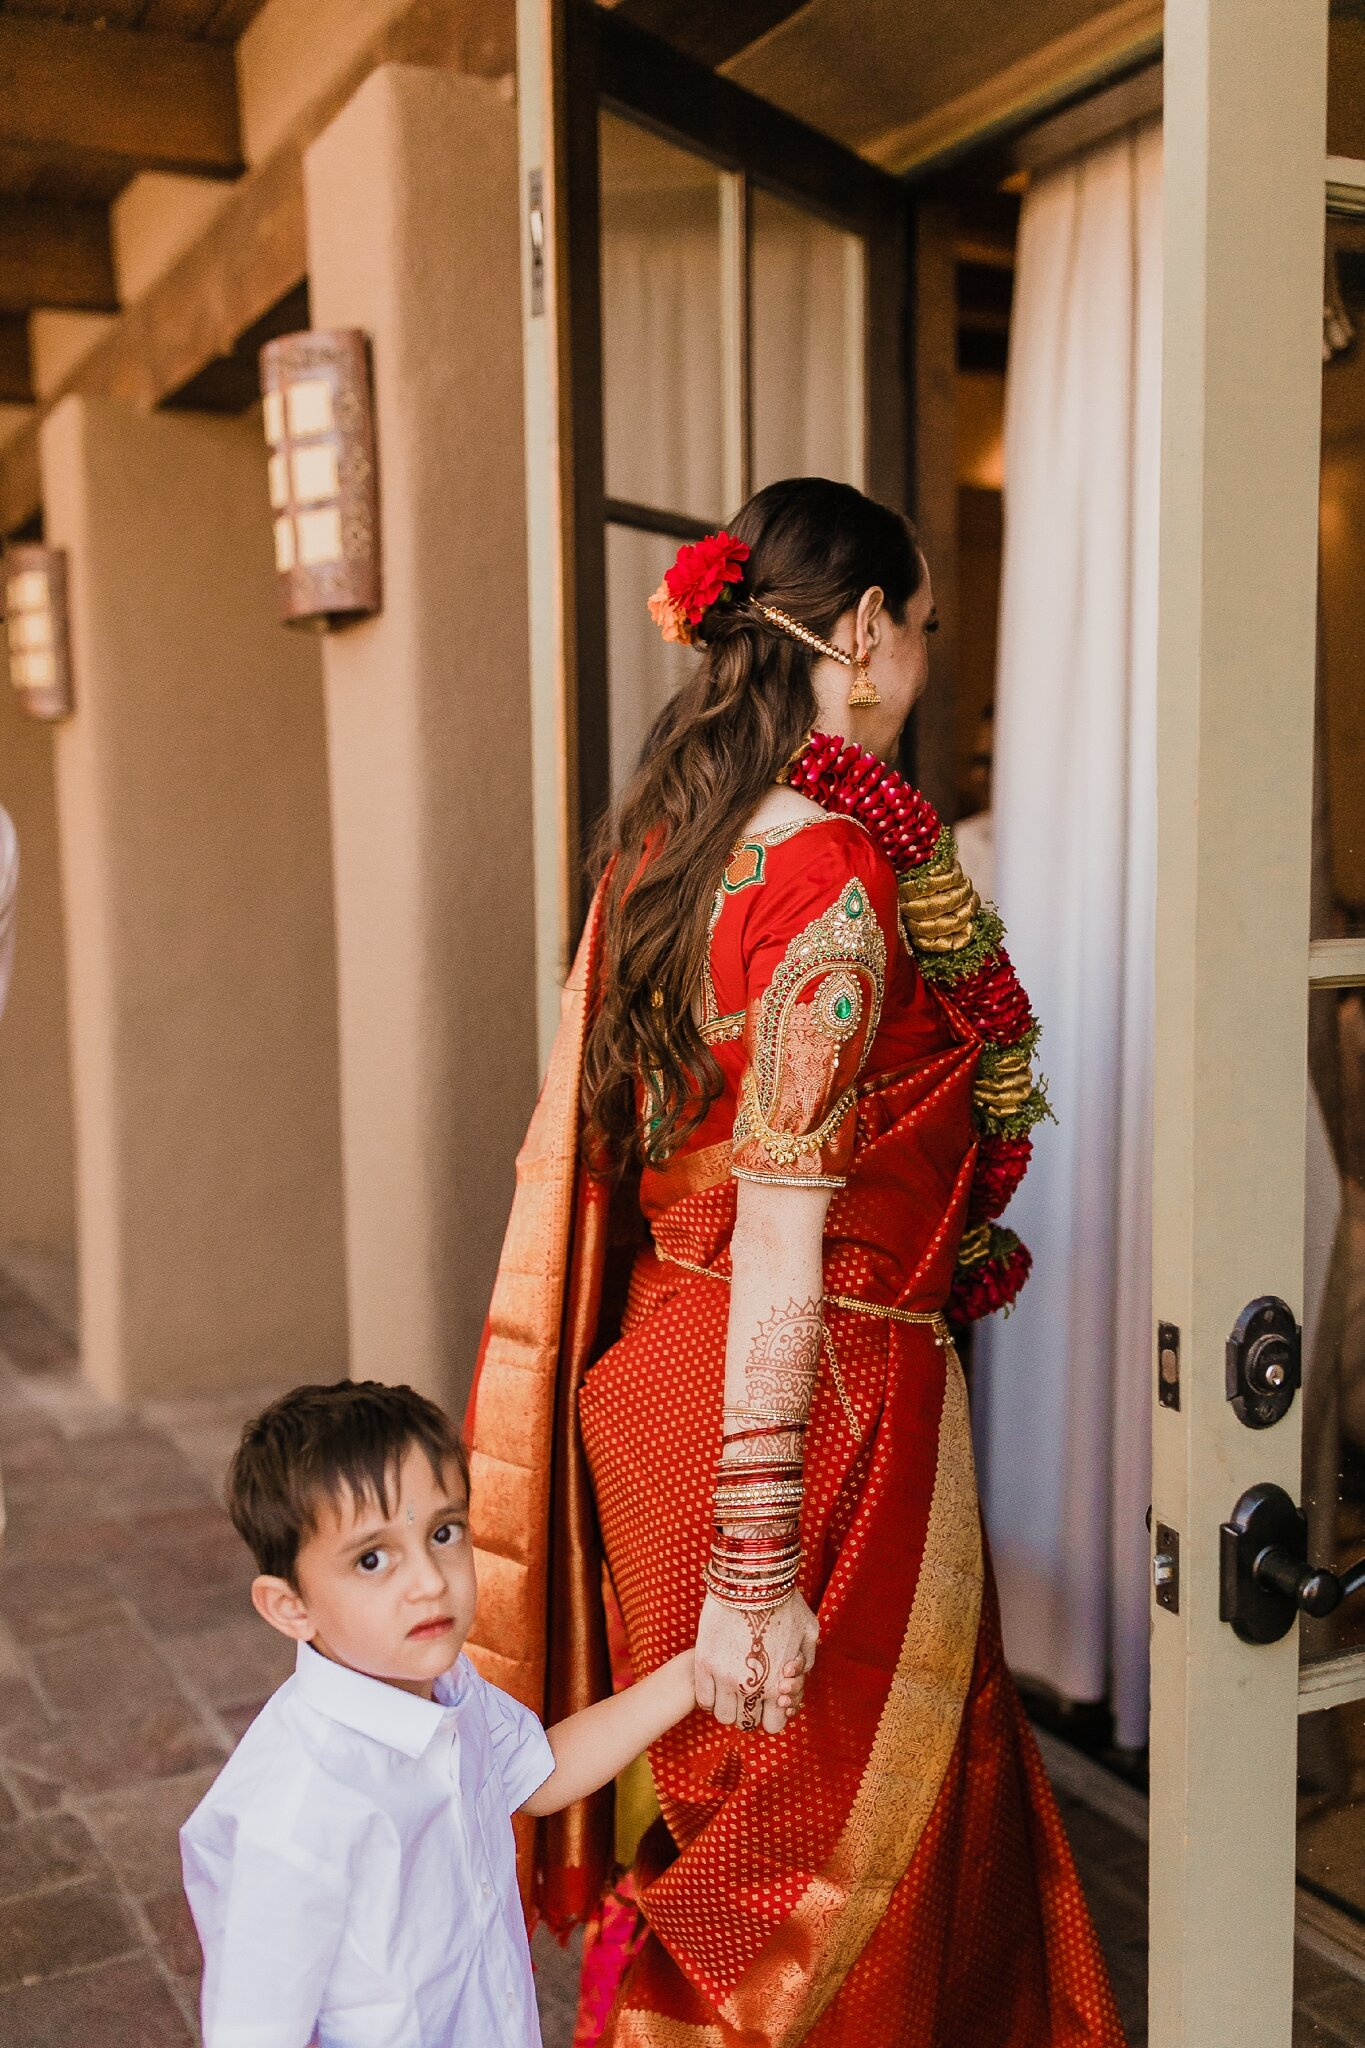 Alicia+lucia+photography+-+albuquerque+wedding+photographer+-+santa+fe+wedding+photography+-+new+mexico+wedding+photographer+-+new+mexico+wedding+-+hindu+wedding+-+catholic+wedding+-+multicultural+wedding+-+santa+fe+wedding_0196.jpg